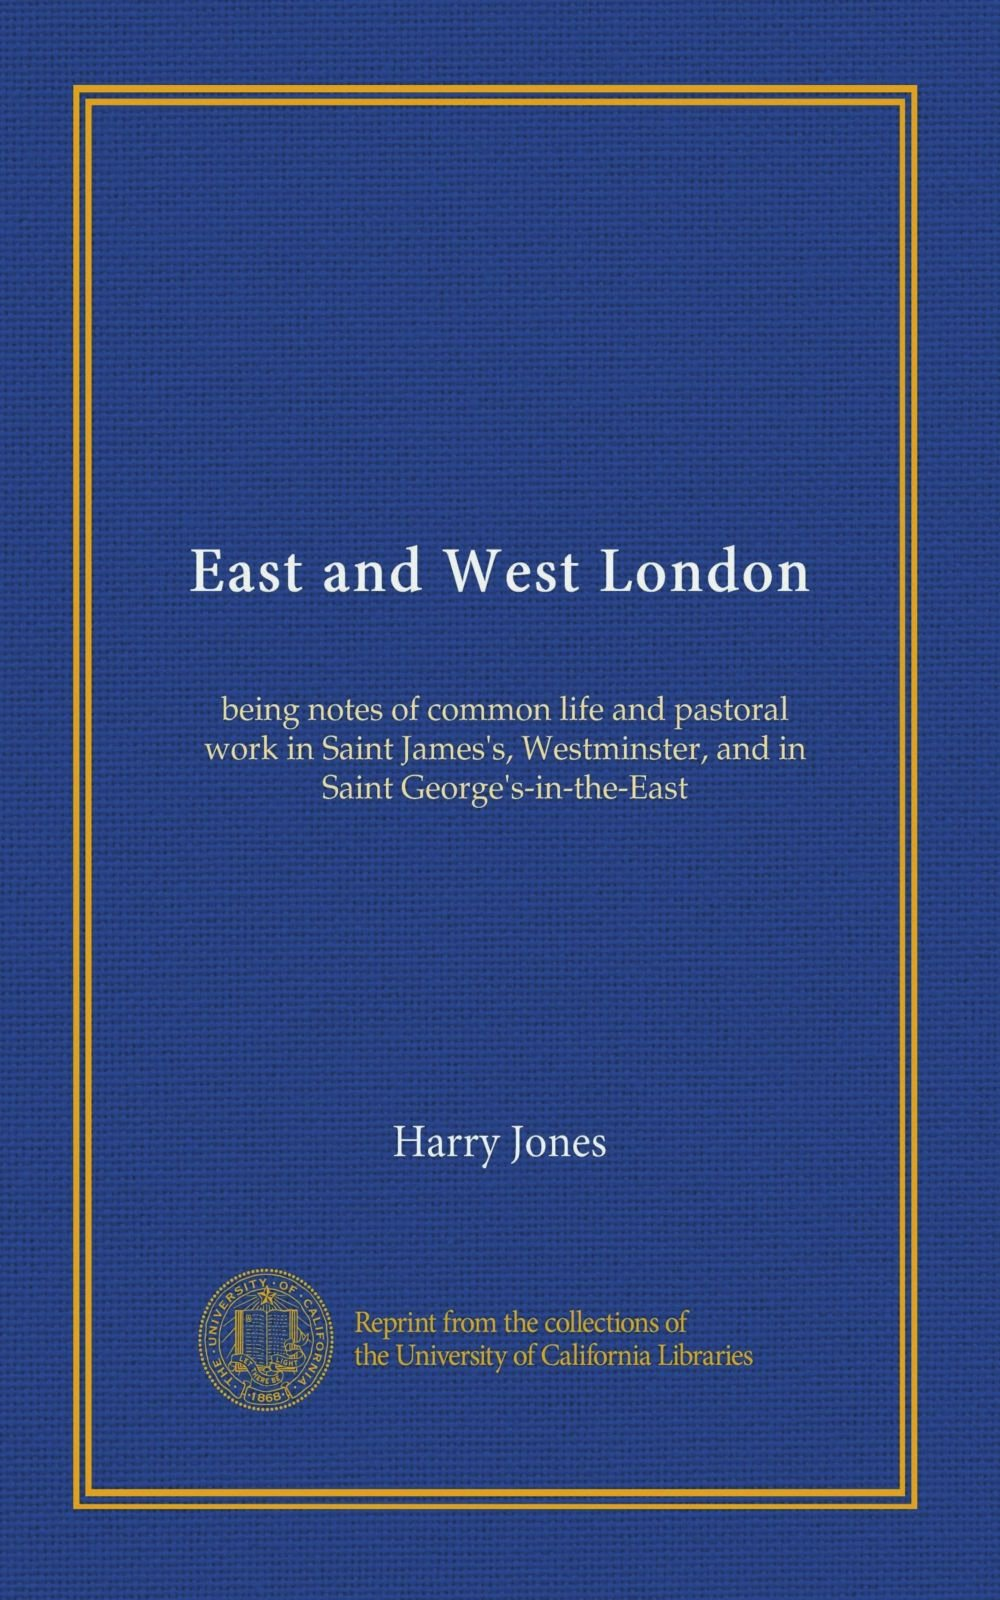 East and West London: being notes of common life and pastoral work in Saint James's, Westminster, and in Saint George's-in-the-East pdf